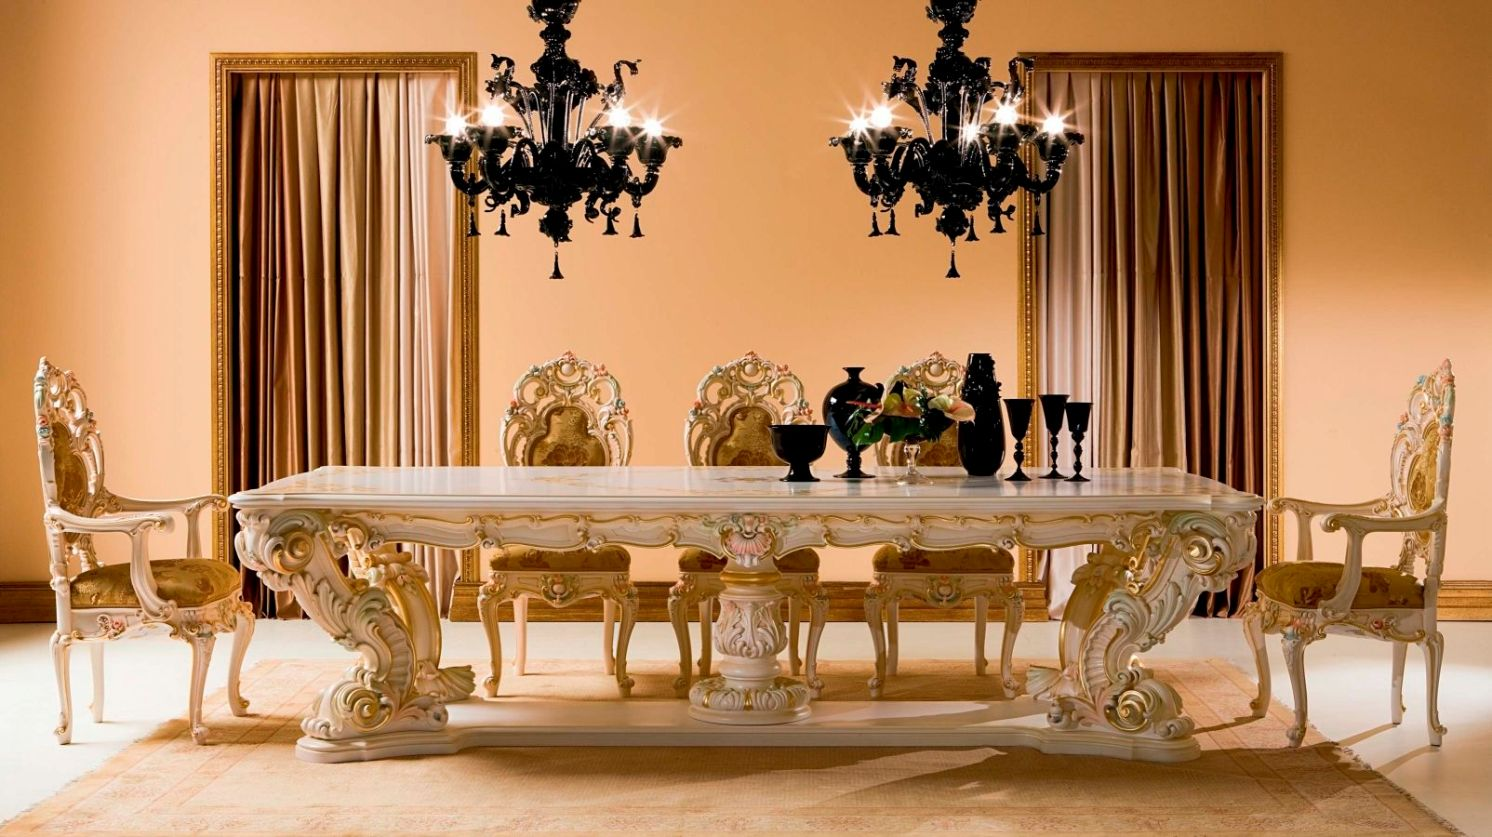 Tips to consider when buying an antique dining room table for Design a dining room table